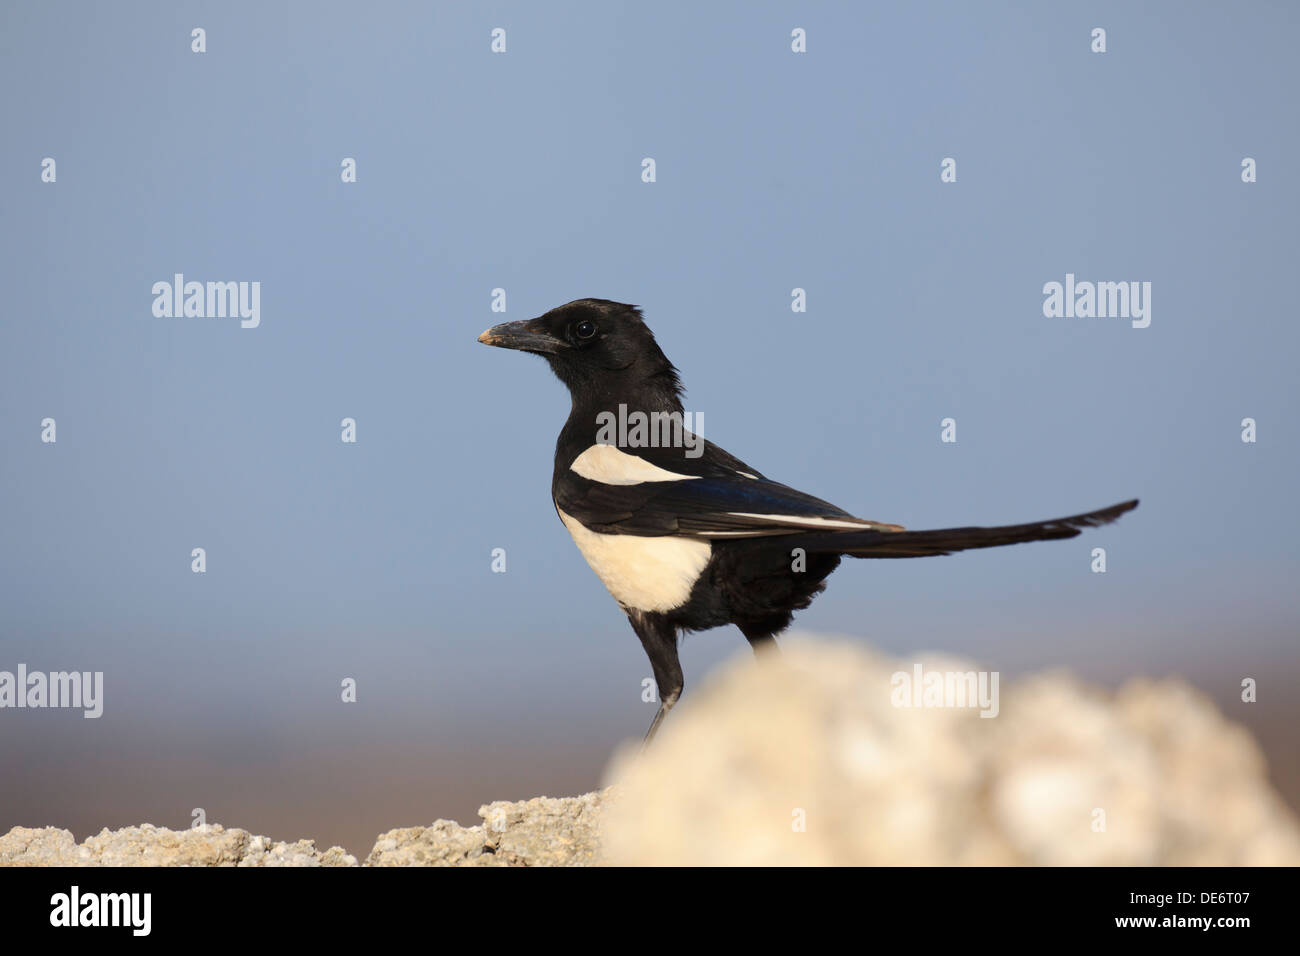 Common Magpie (Pica pica) perched on a stone. Lleida. Catalonia. Spain. Stock Photo